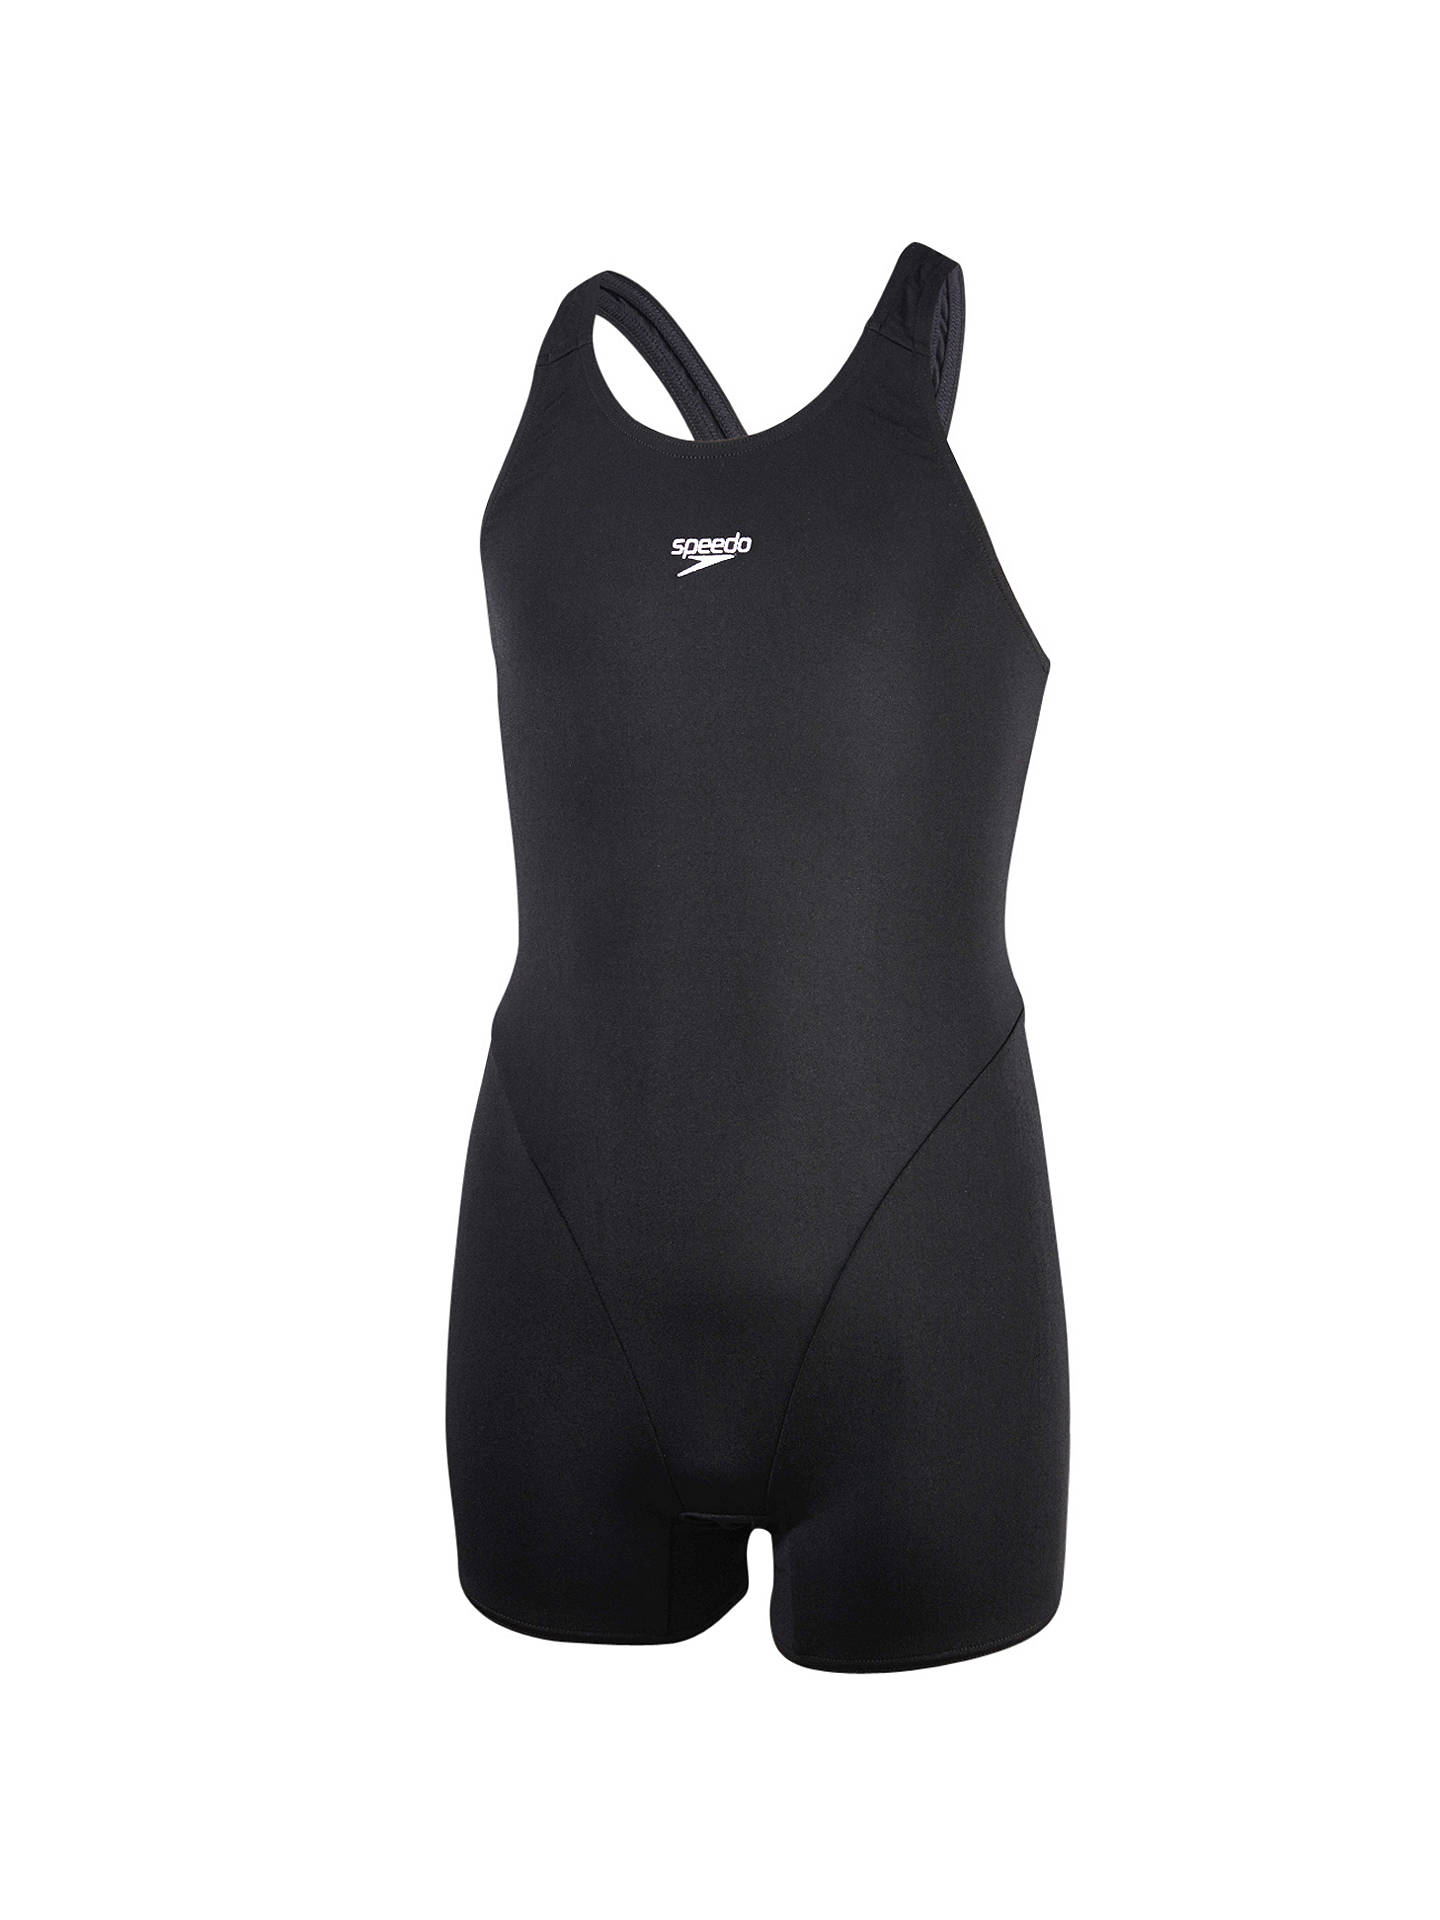 "BuySpeedo Girls' End+ Legsuit, Black, Chest 24"" Online at johnlewis.com"